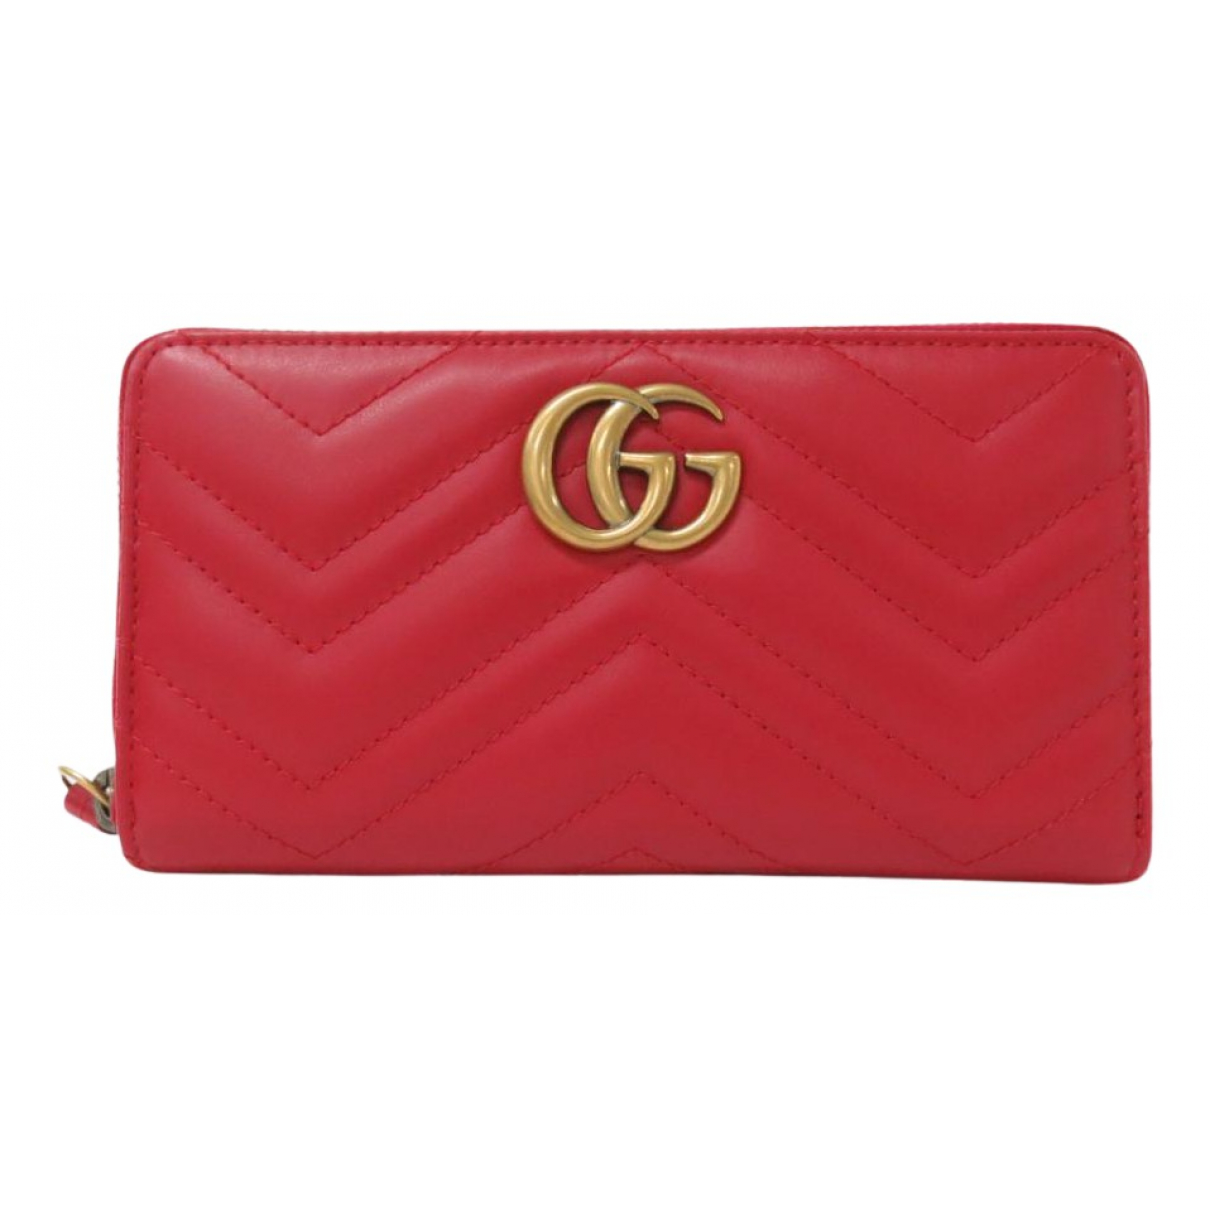 Gucci Marmont Portemonnaie in  Rot Leder